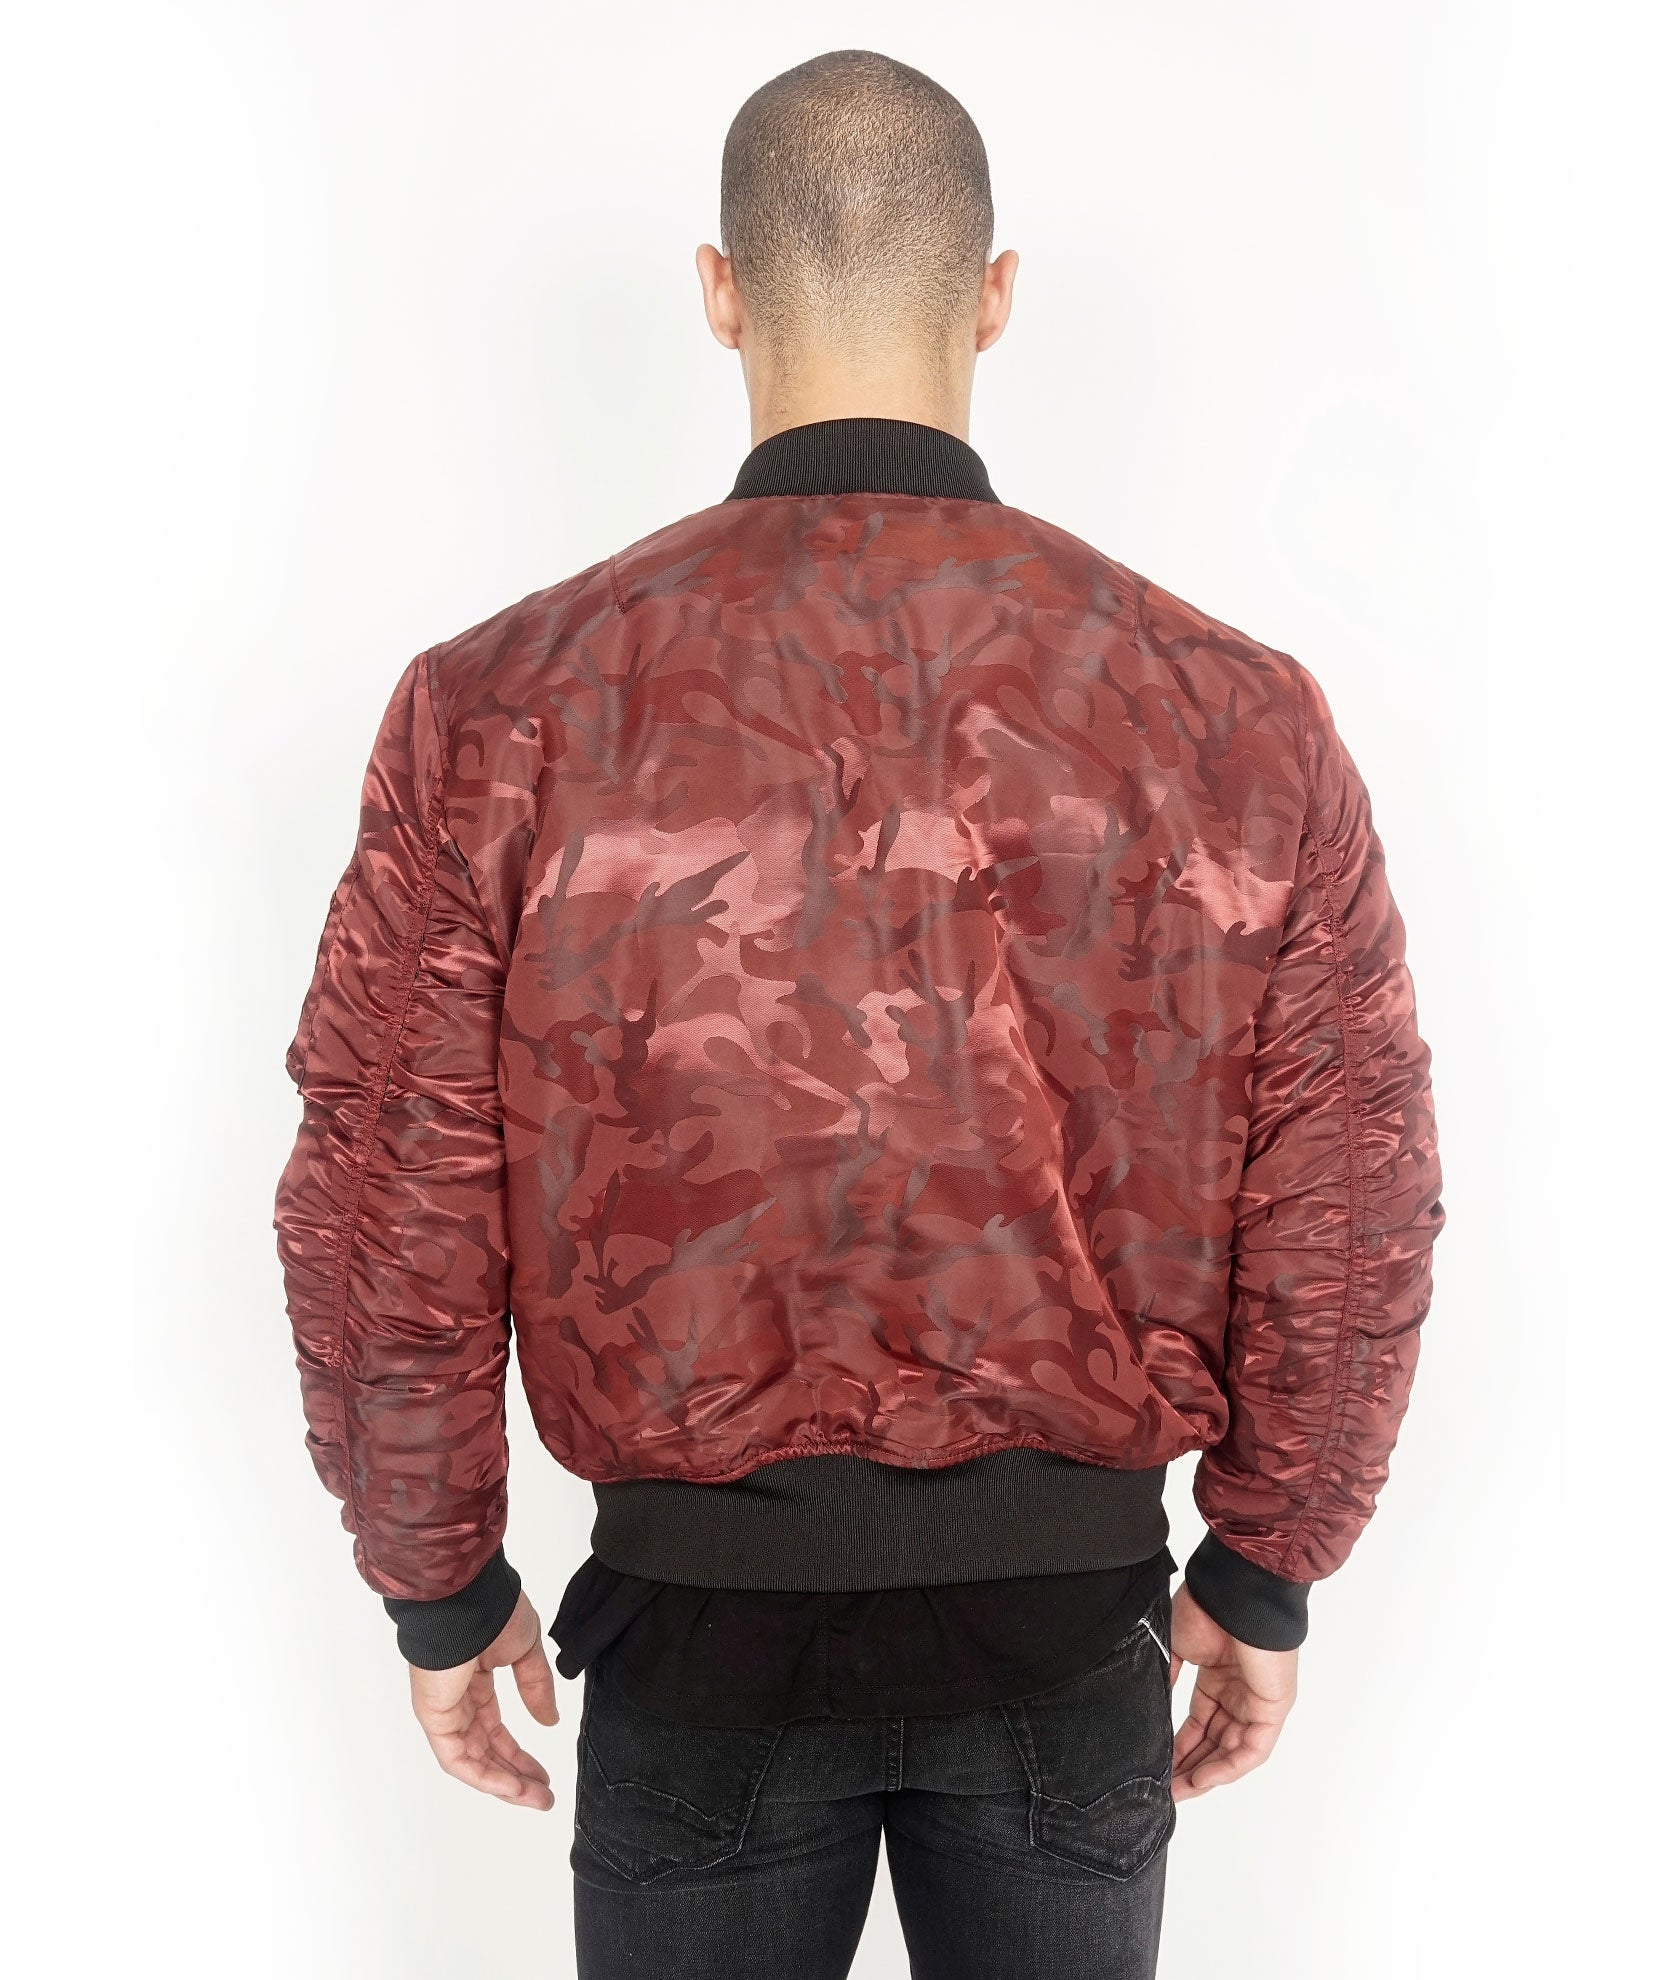 ceaaf1e30f450 ... Load image into Gallery viewer, Cult of IndividualityMen's  Reversible Bomber Jacket ...